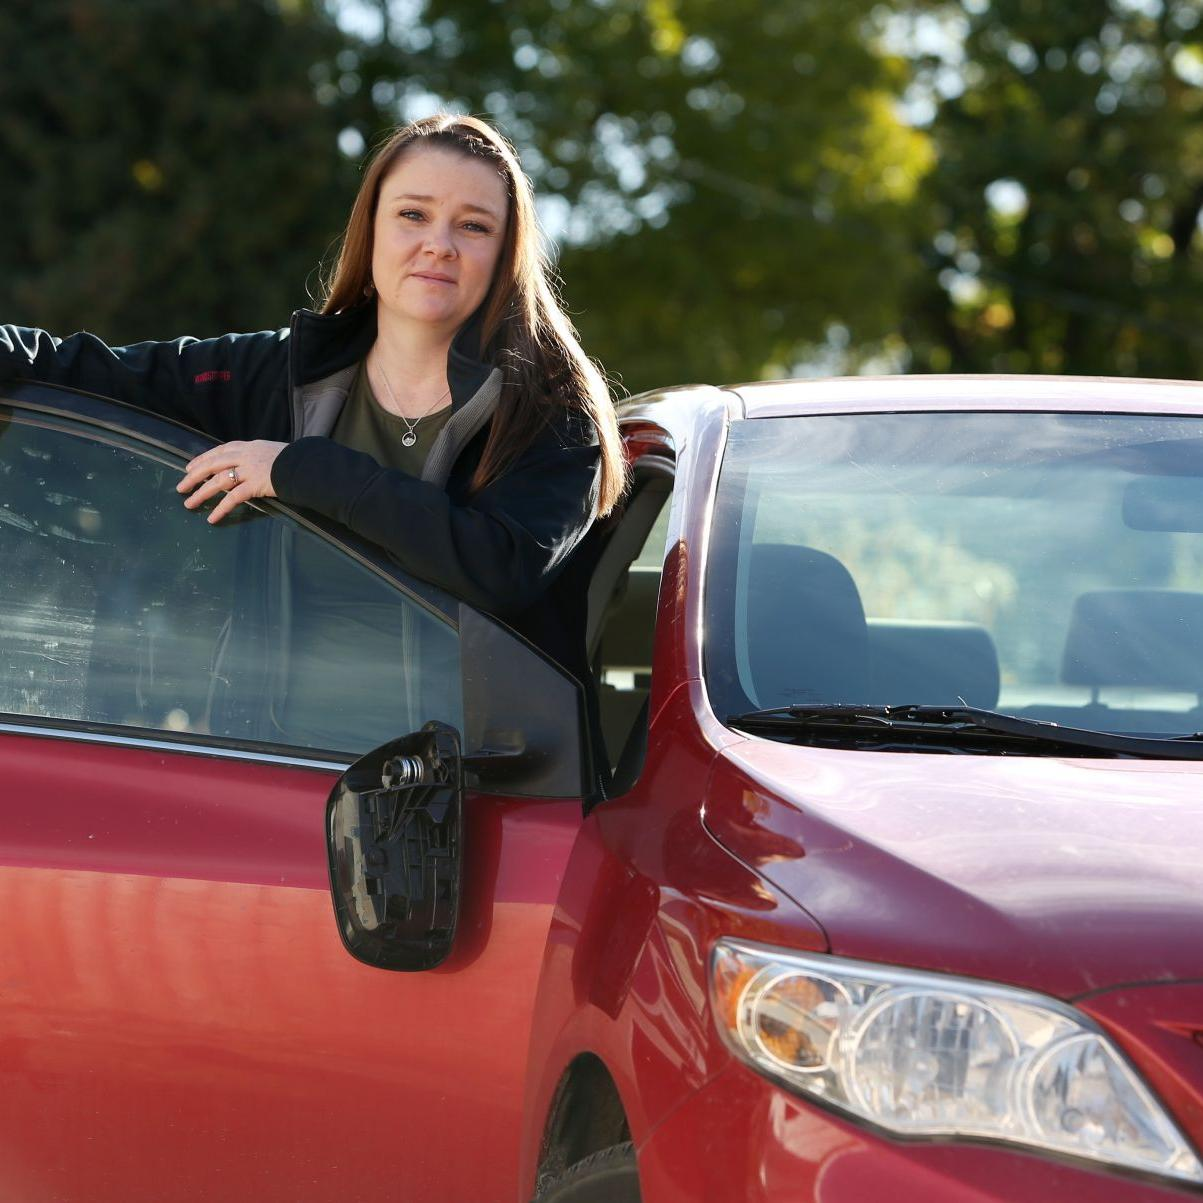 A car is stolen every 10 hours in Billings, and it takes a